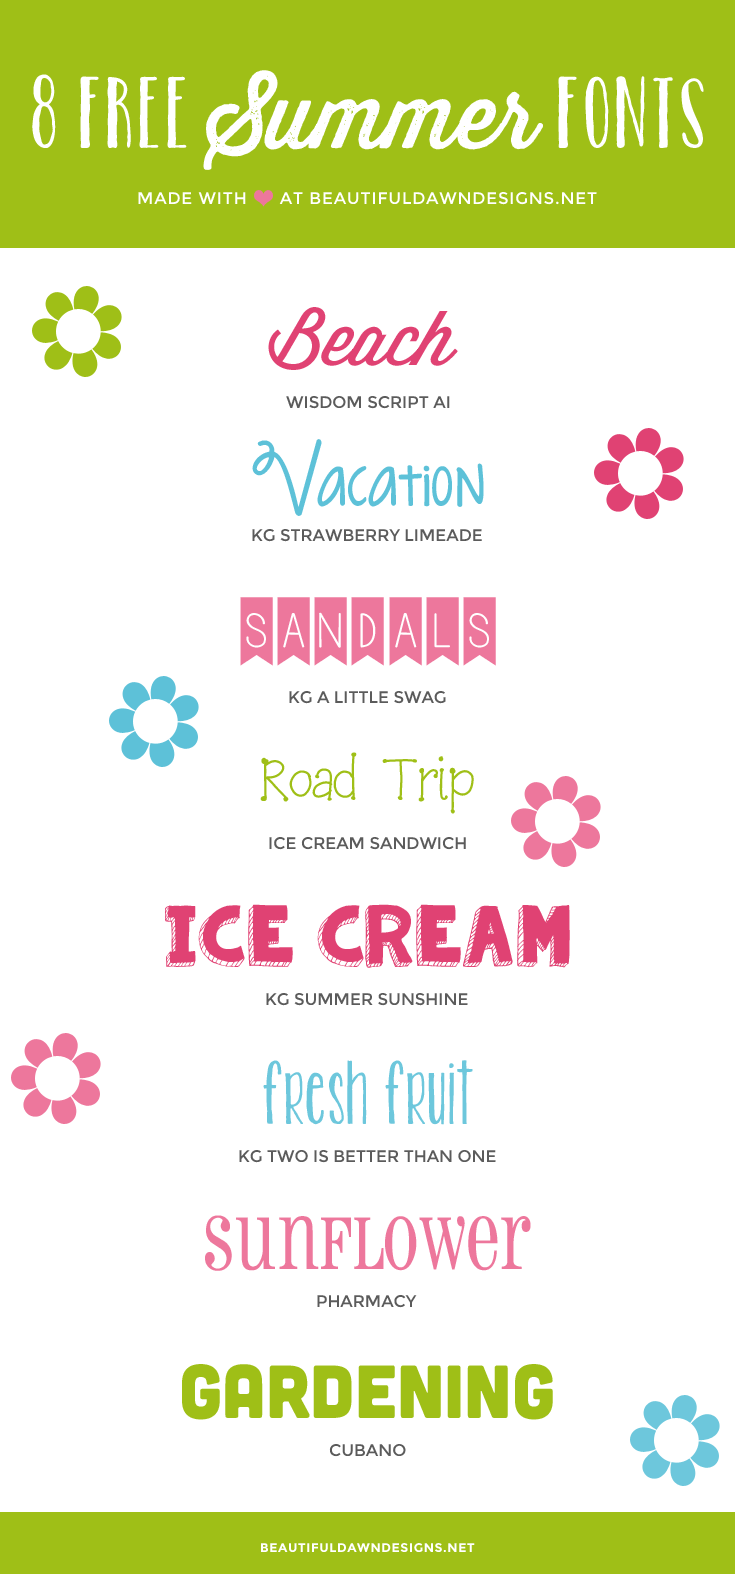 Enjoy this round up of free summer fonts. Use these fonts to jazz up your fun summer printables or other projects.